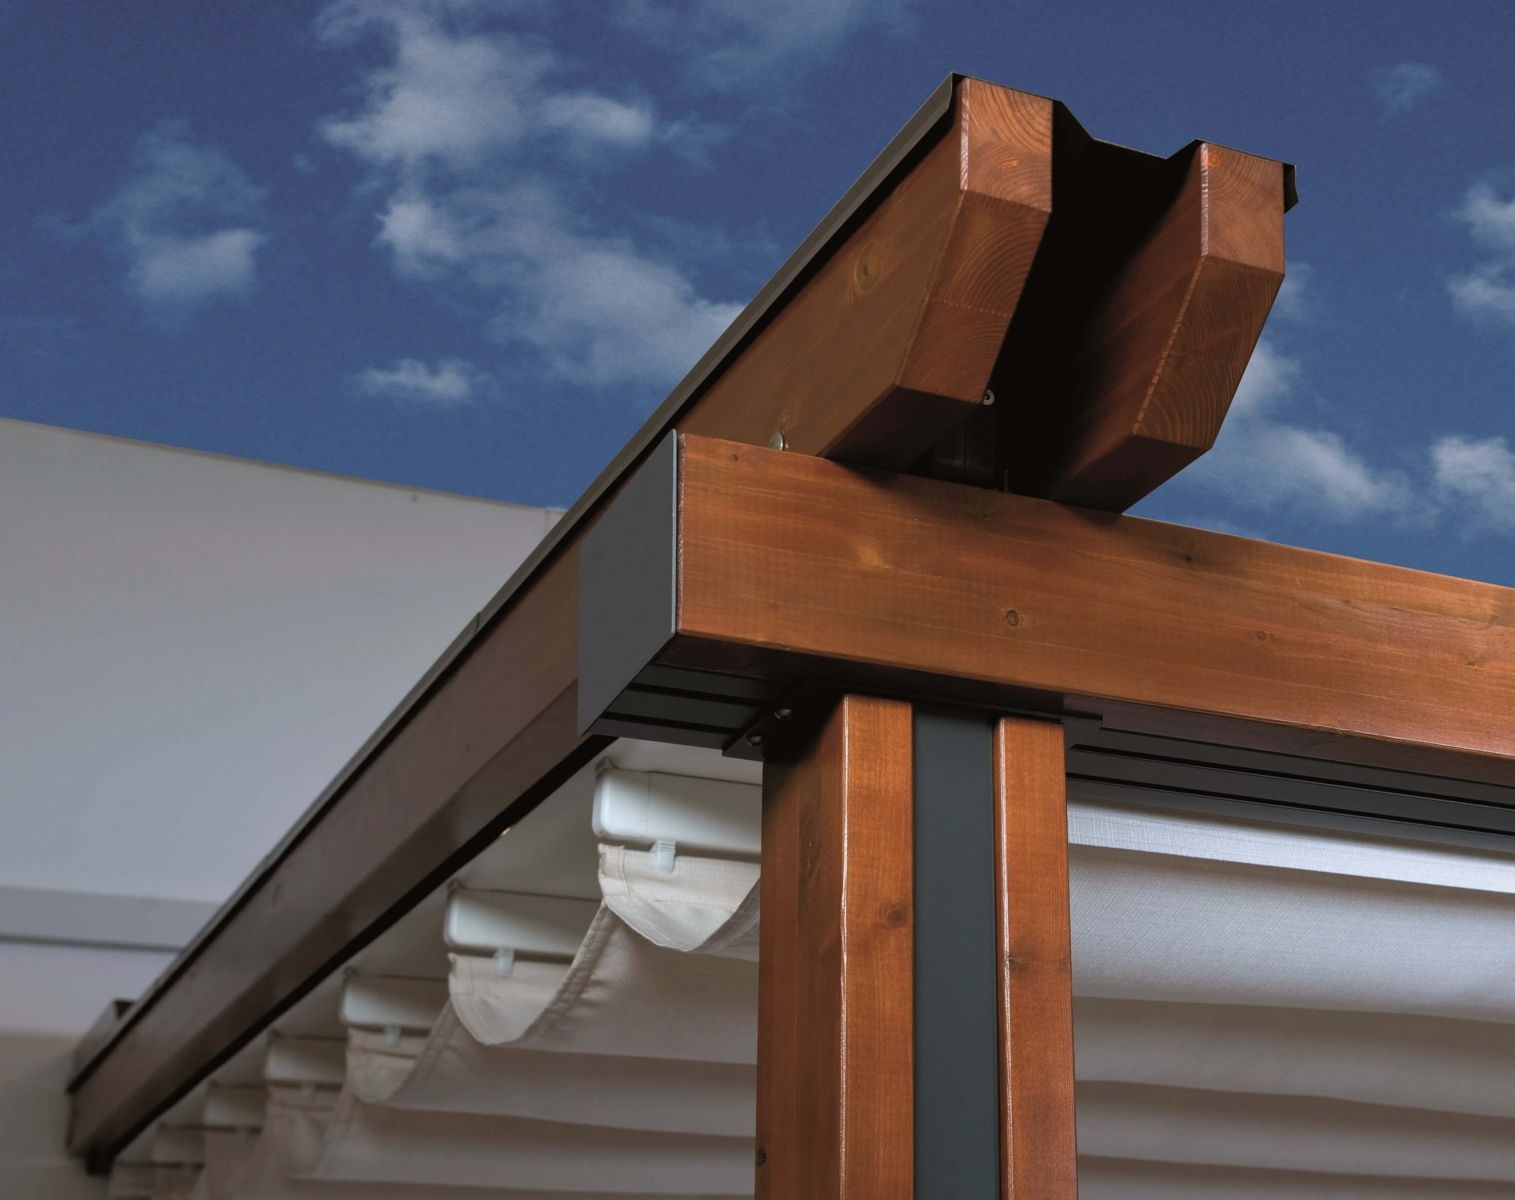 Roof Design Ideas: Sunair Retractable Awnings & Canopies